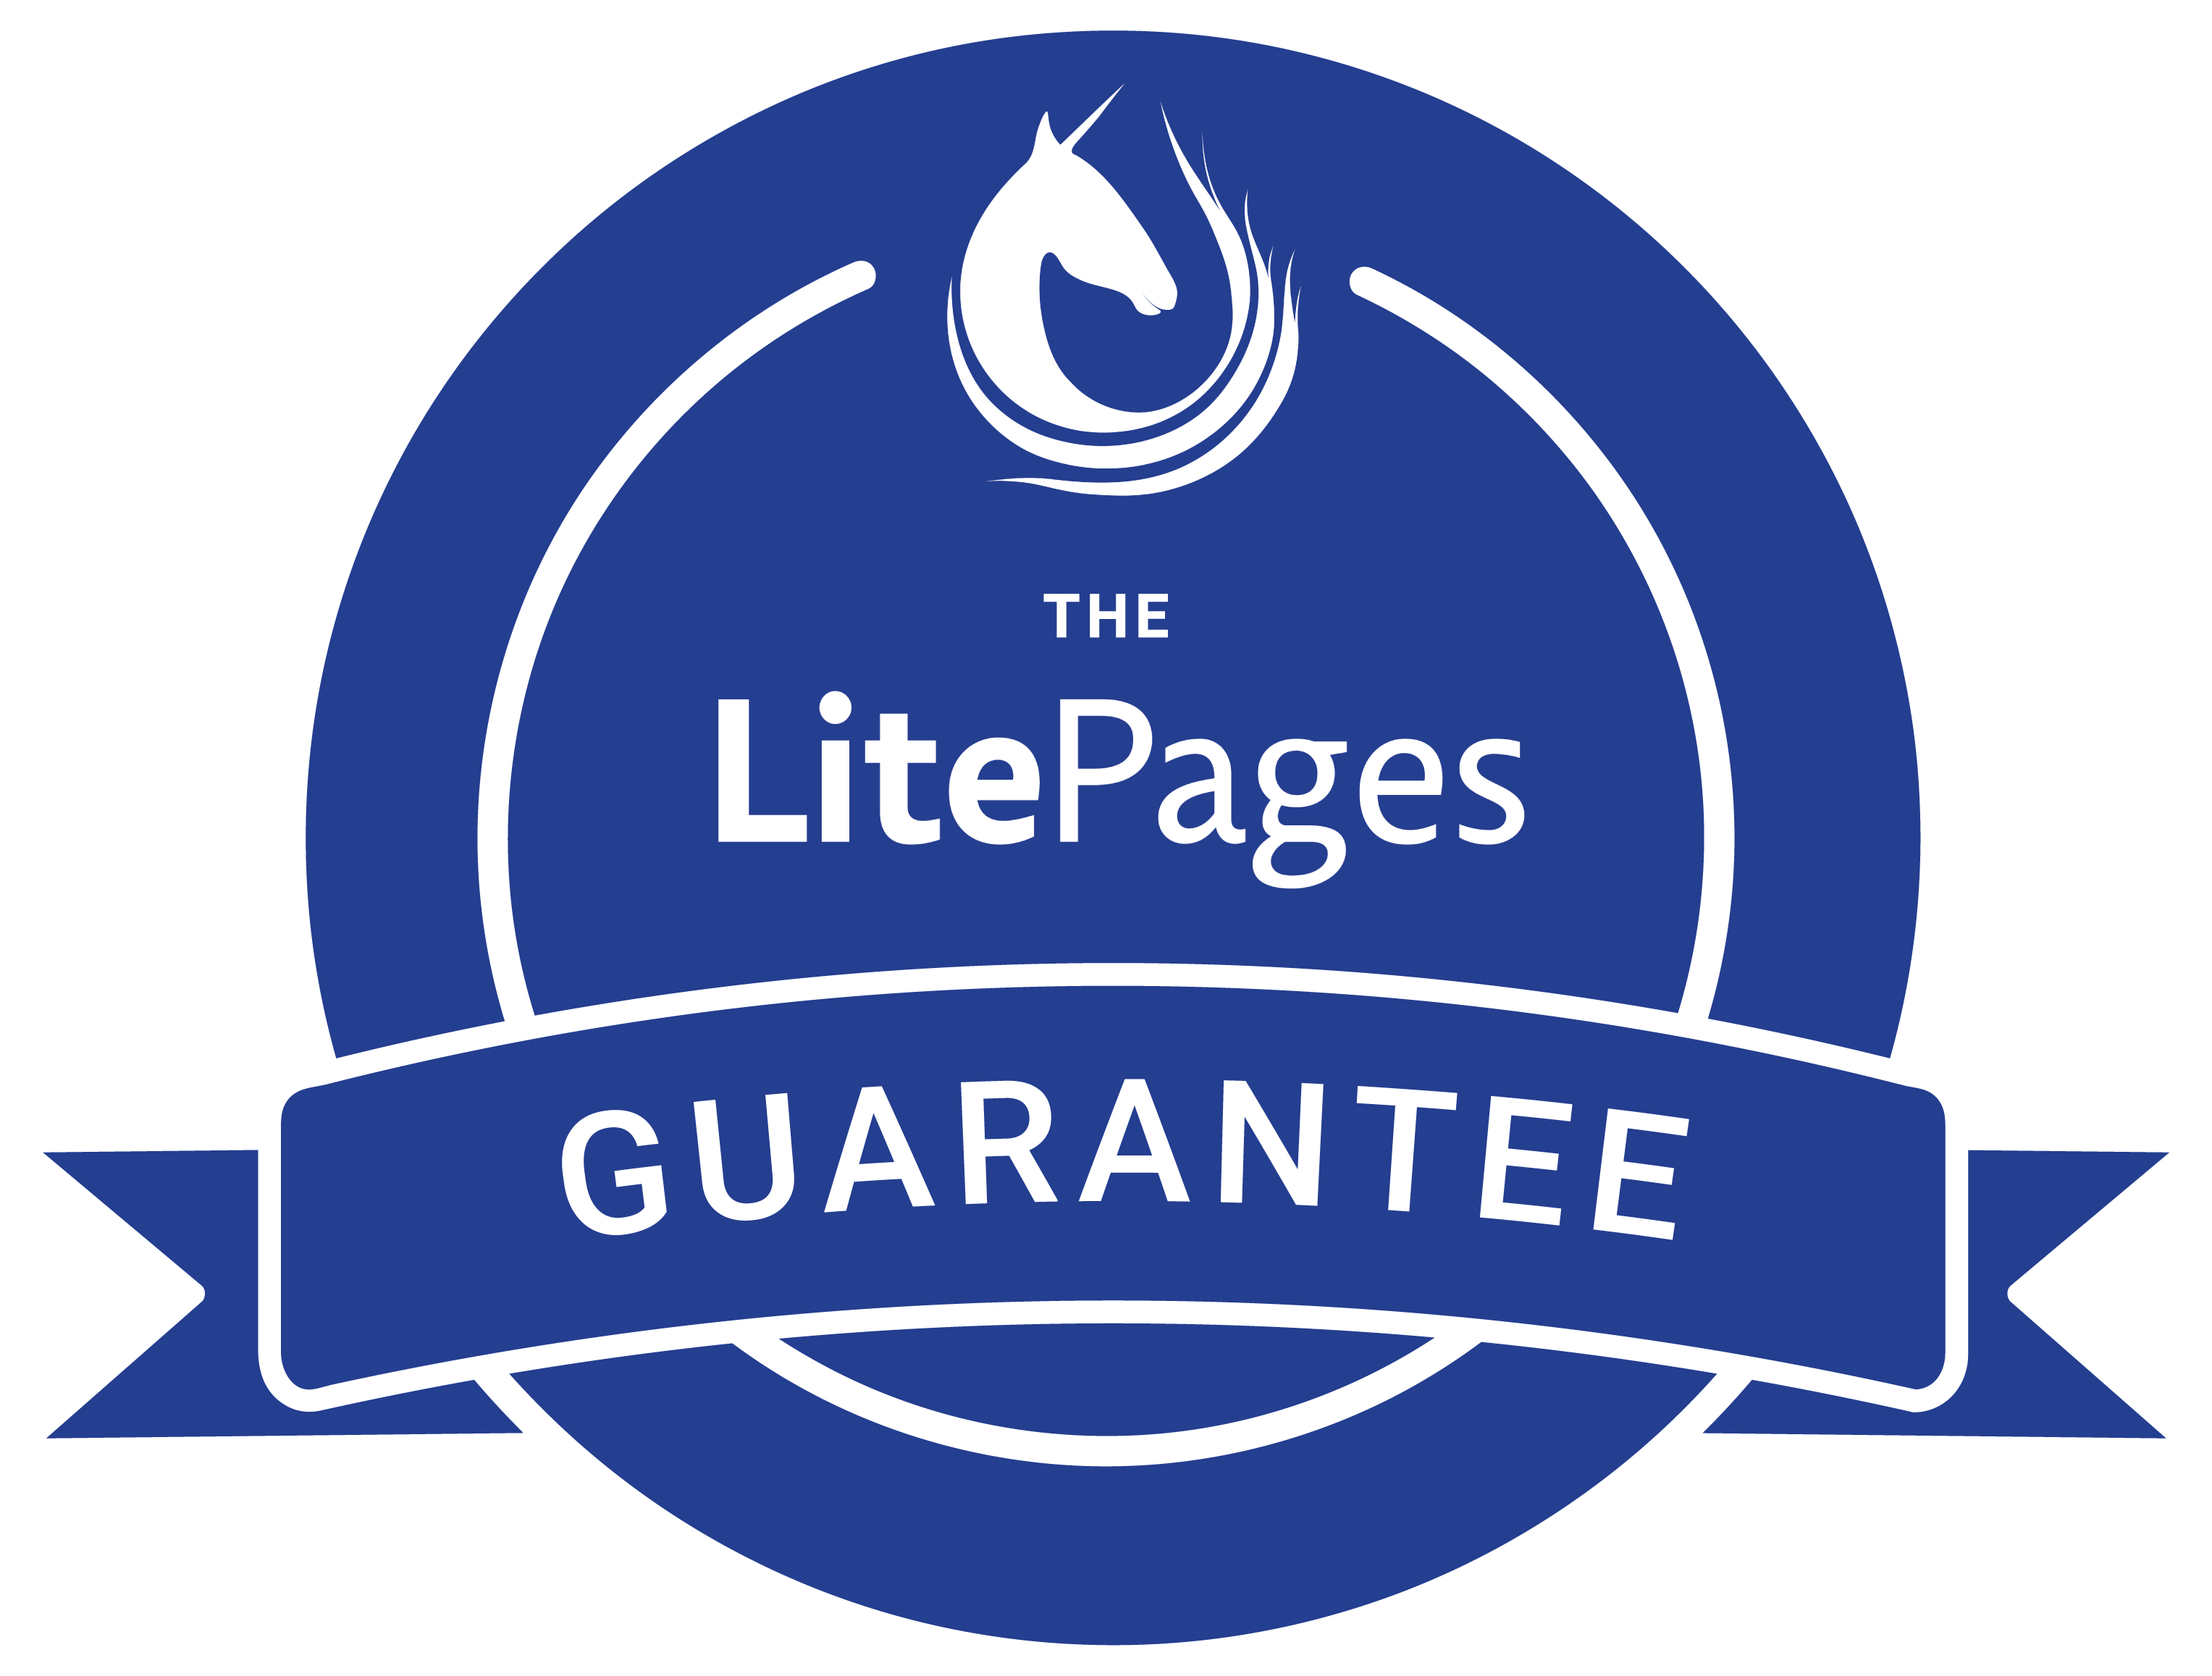 The LitePages Removalist Guarantee